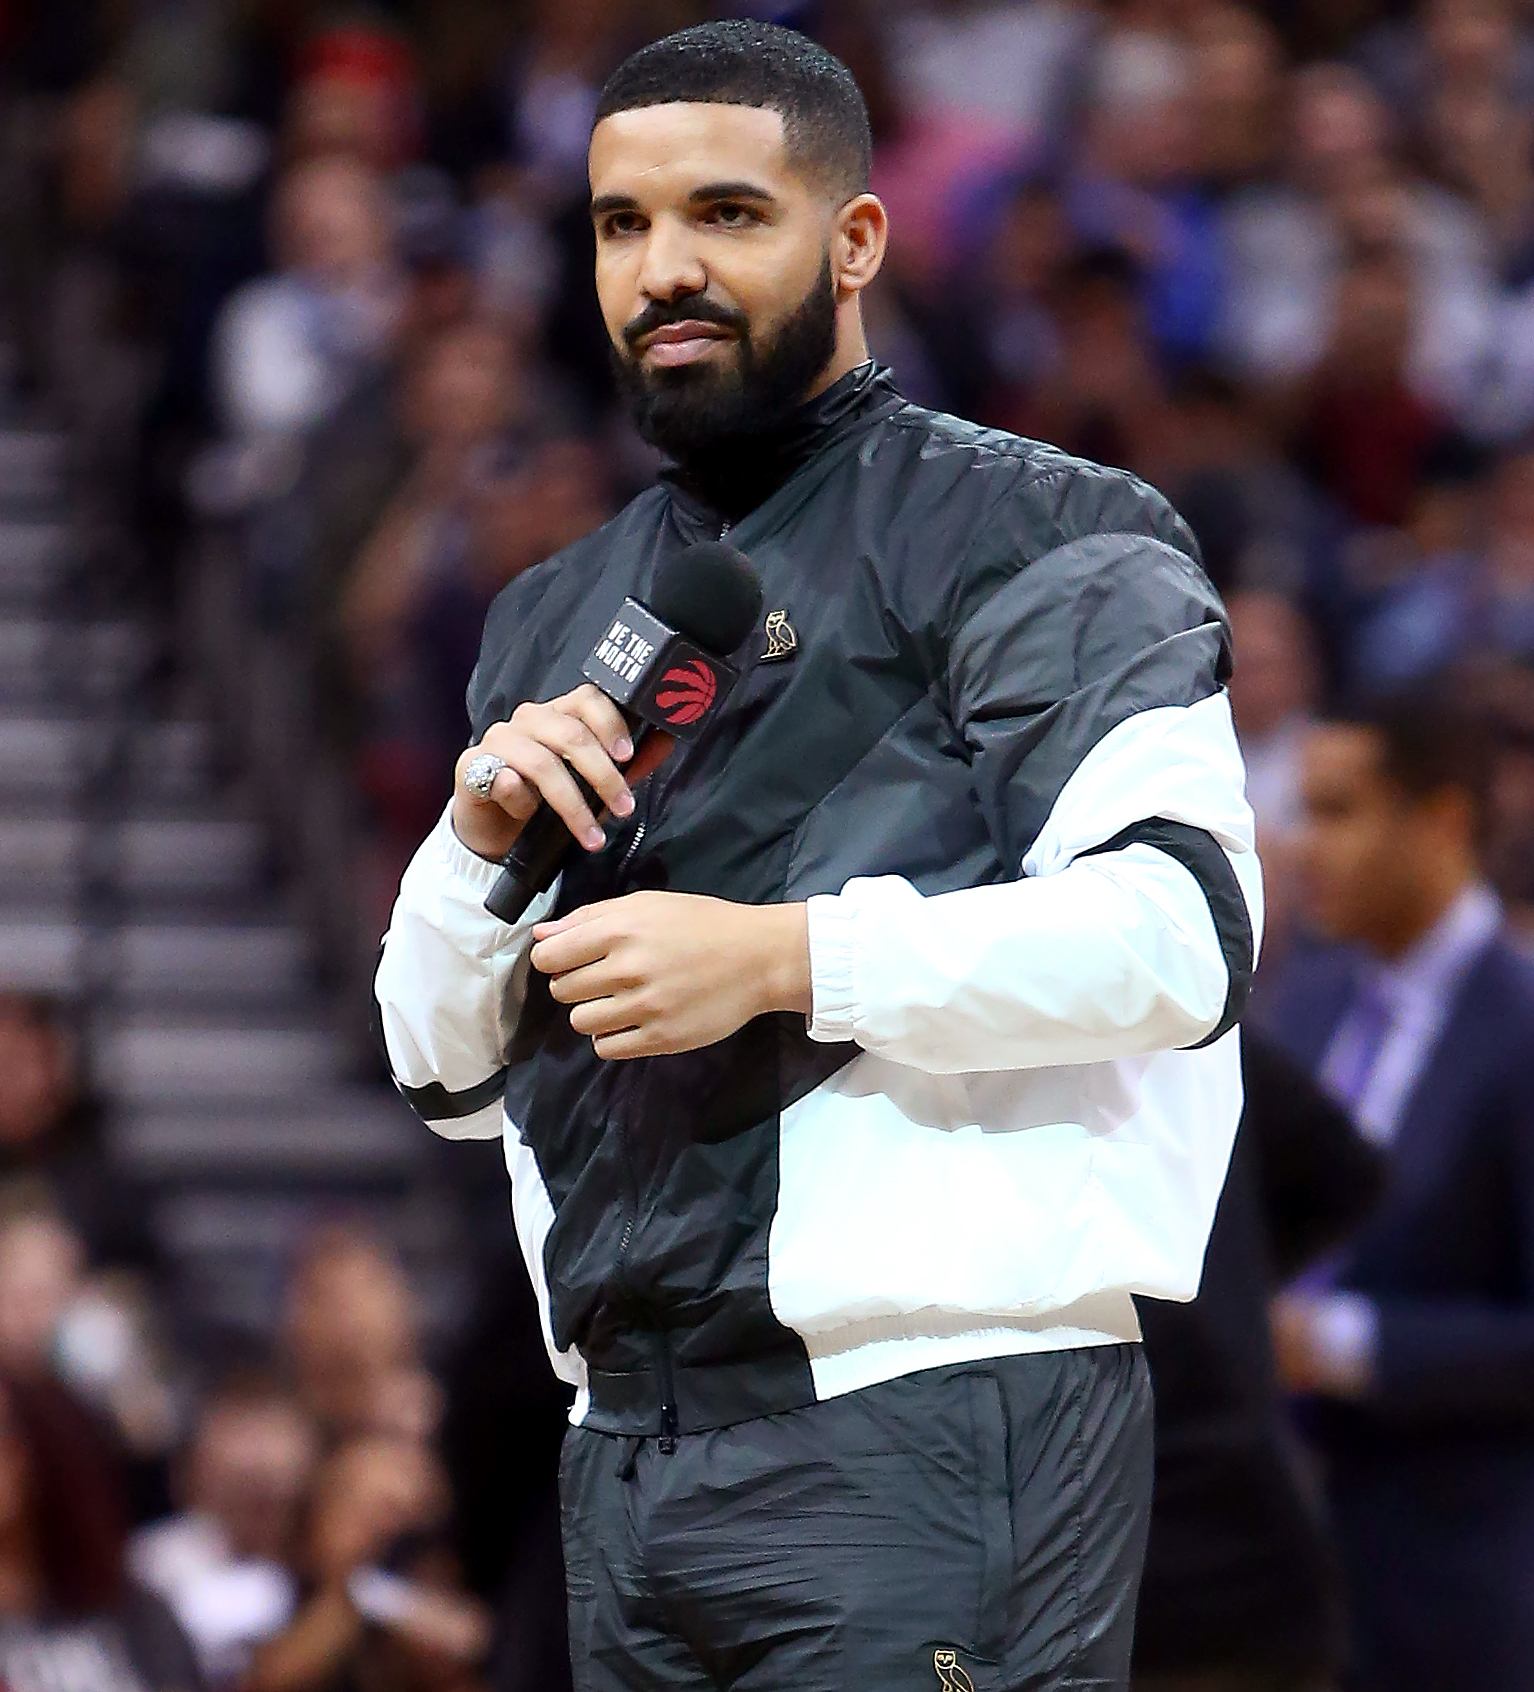 """drake-feud-2 - In October 2018, Drake admitted on HBO's The Shop that he believed West went behind his back and revealed that the """"One Dance"""" rapper had a son that he was choosing to keep out of the spotlight at the time. """"I tell him I'm having trouble with my son's mother. We had a conversation. I wake up, and all these dates are out,"""" the """"Hotline Bling"""" crooner recalled."""